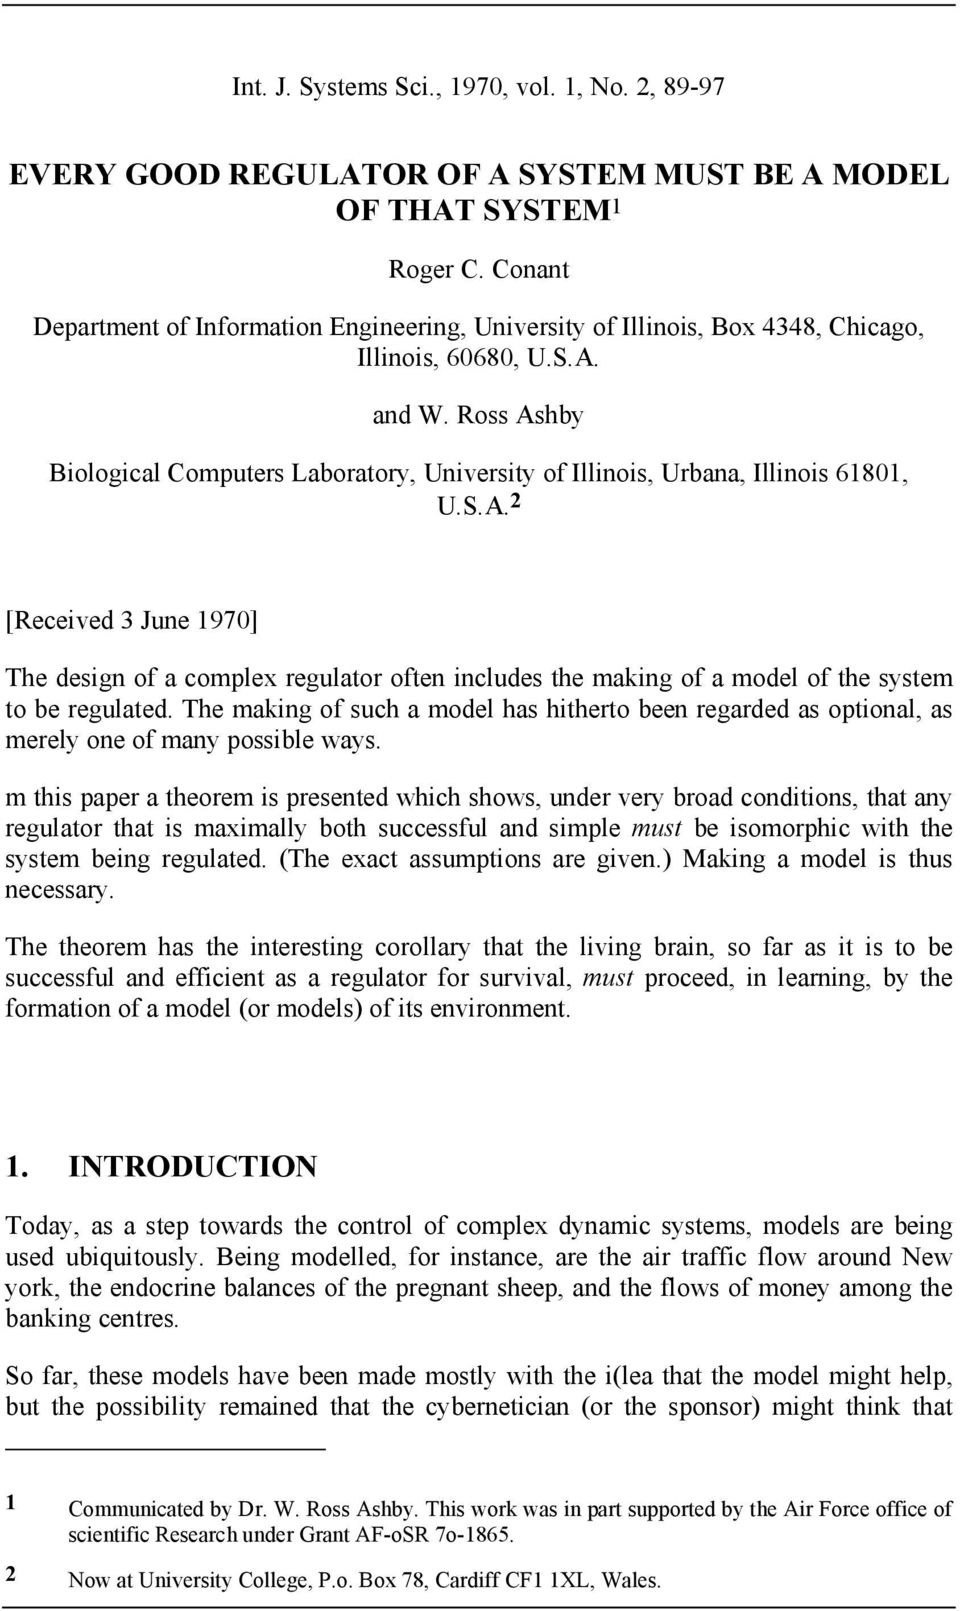 and W. Ross Ashby Bologcal Computers Laboratory, Unversty of Illnos, Urbana, Illnos 61801, U.S.A. 2 [Receved 3 June 1970] The desgn of a complex regulator often ncludes the makng of a model of the system to be regulated.